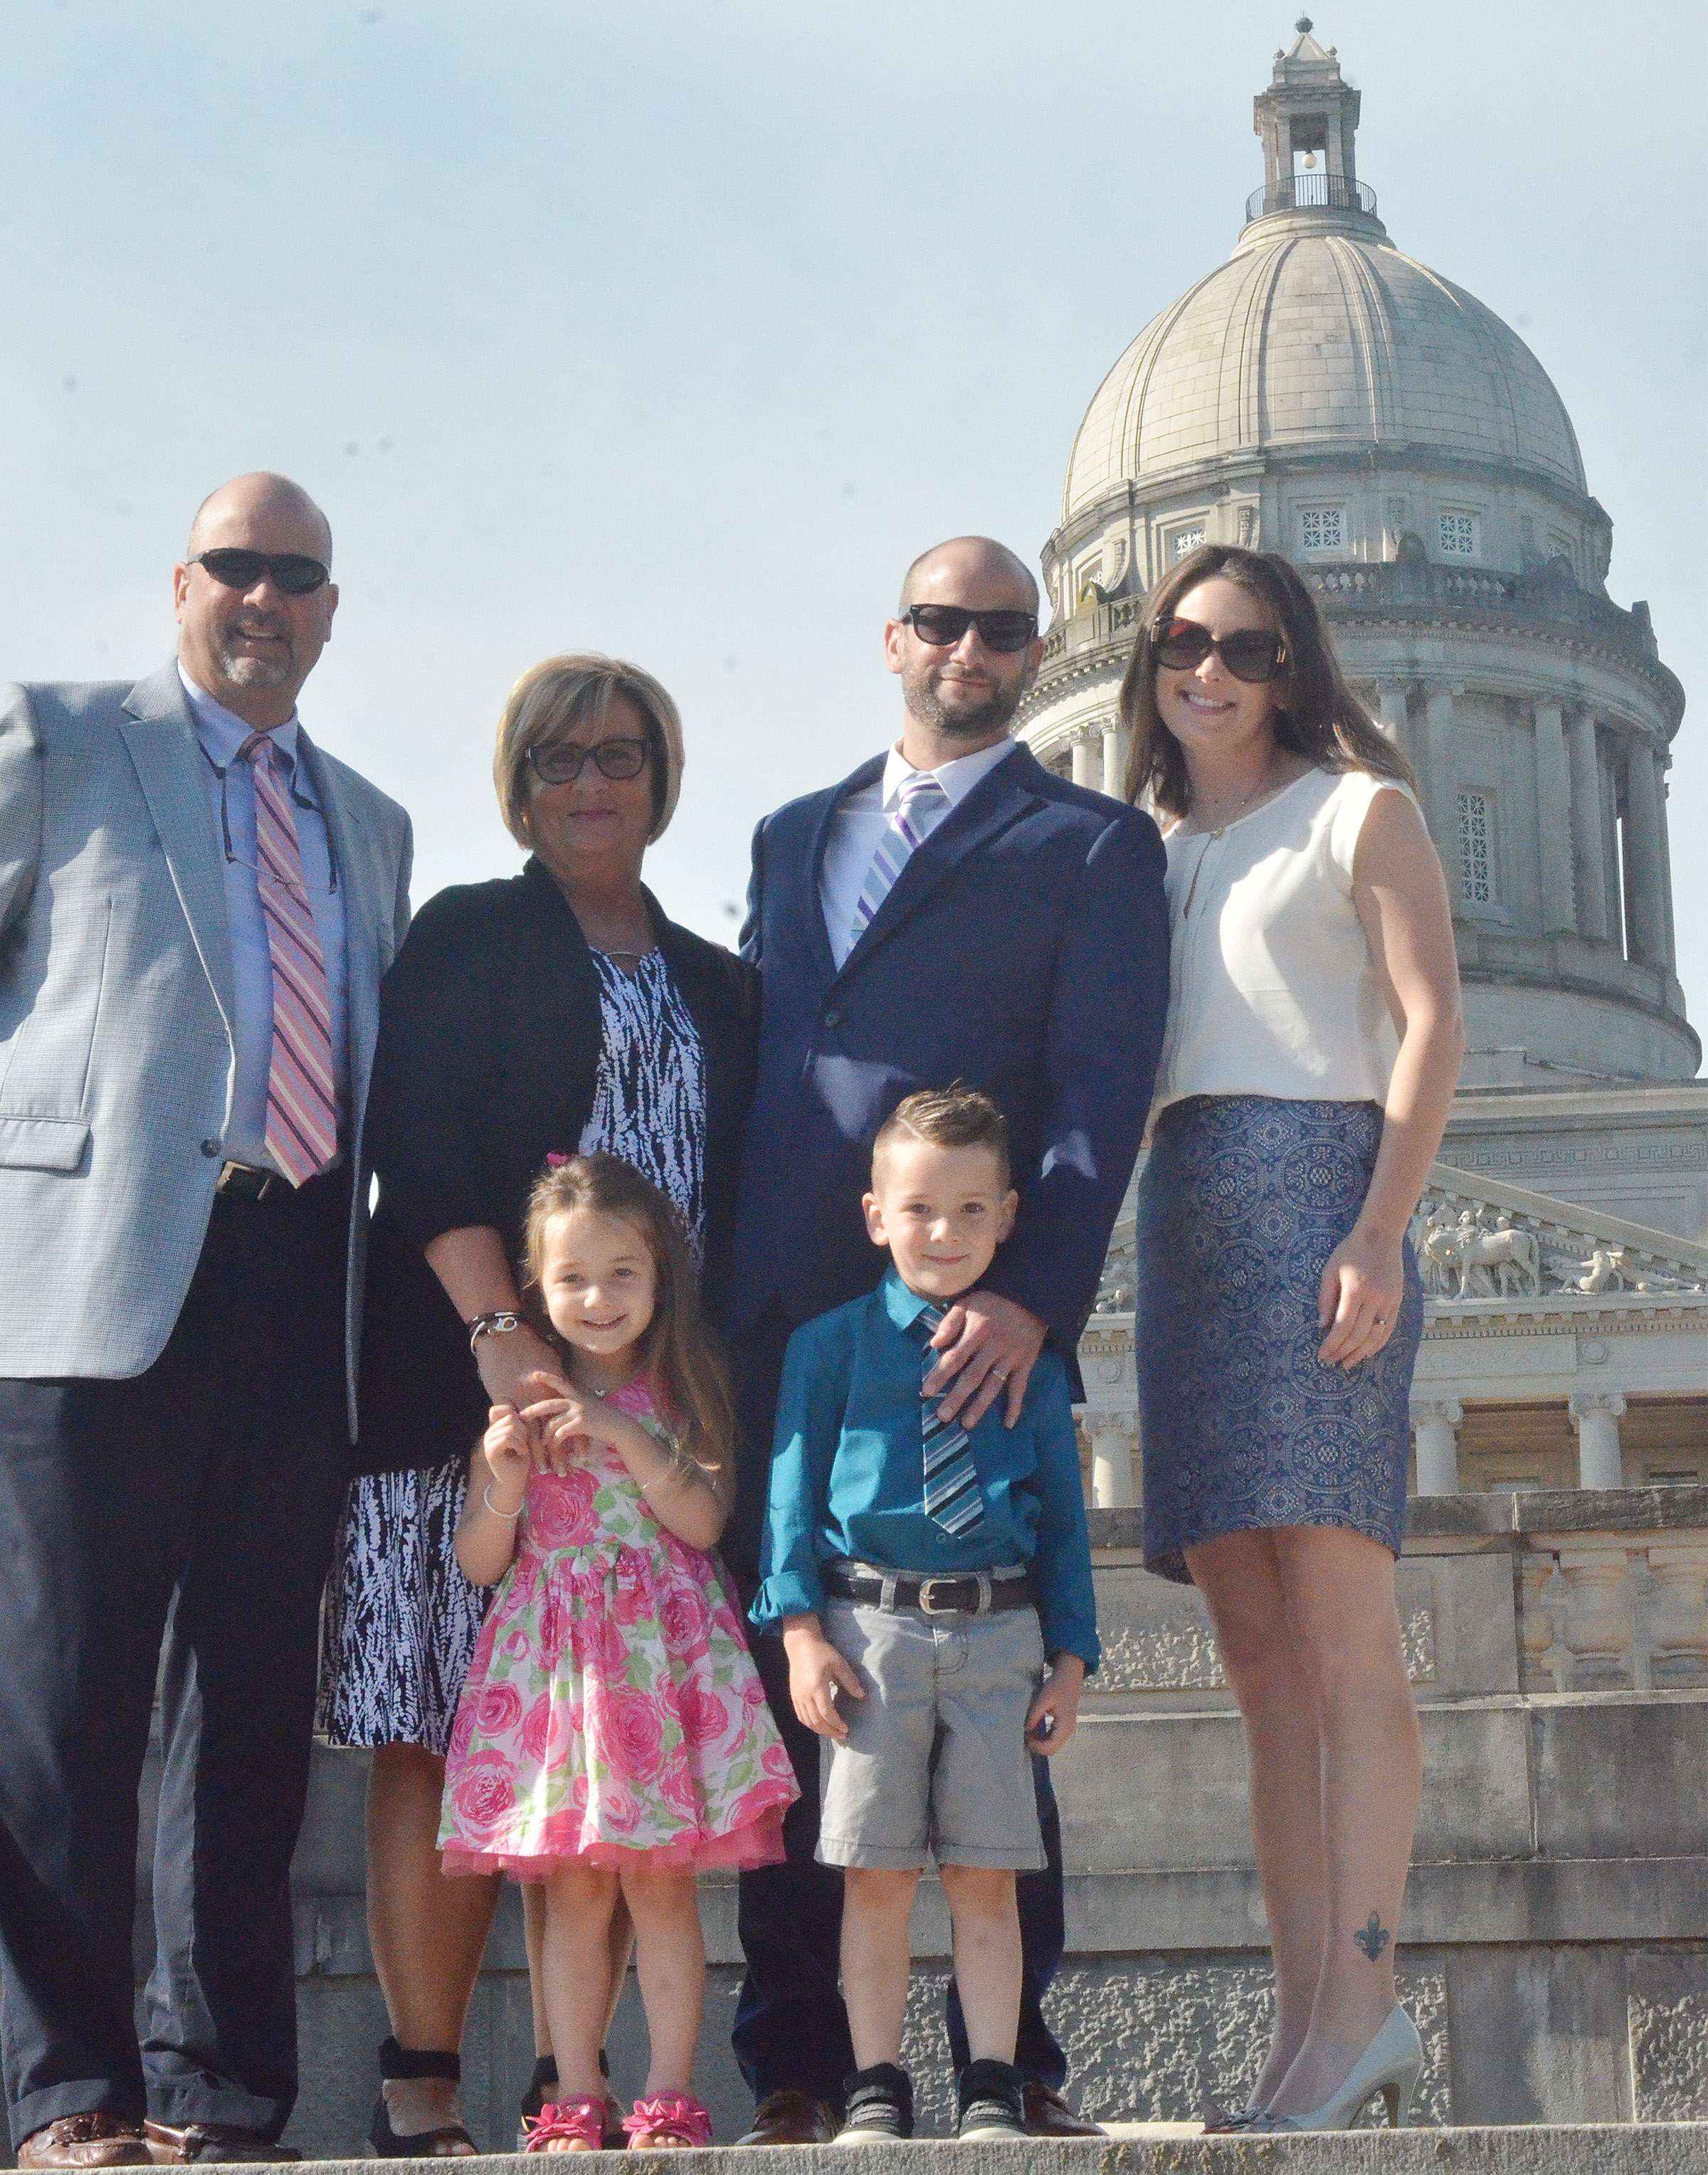 CHS teacher Ben Davis and his wife, Stephanie, pose for a photo in front of the Kentucky capitol with their children Cash and Lylah and Davis's parents, Tim, who is athletic director at CHS, and Joni, who is director of exceptional education at Campbellsville Independent Schools.